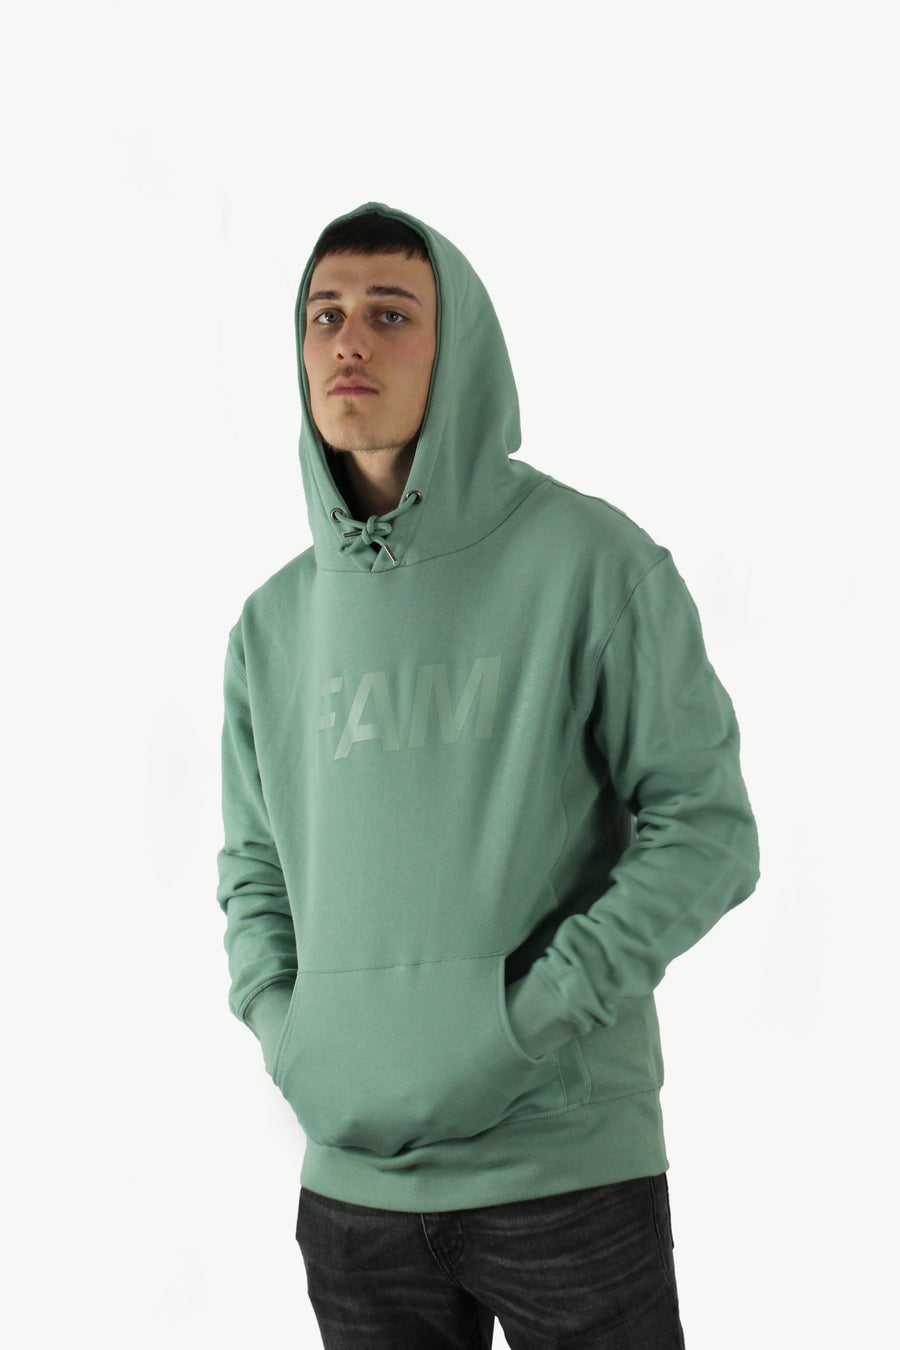 HOODIES - Original FAM Hoodie / Light Green